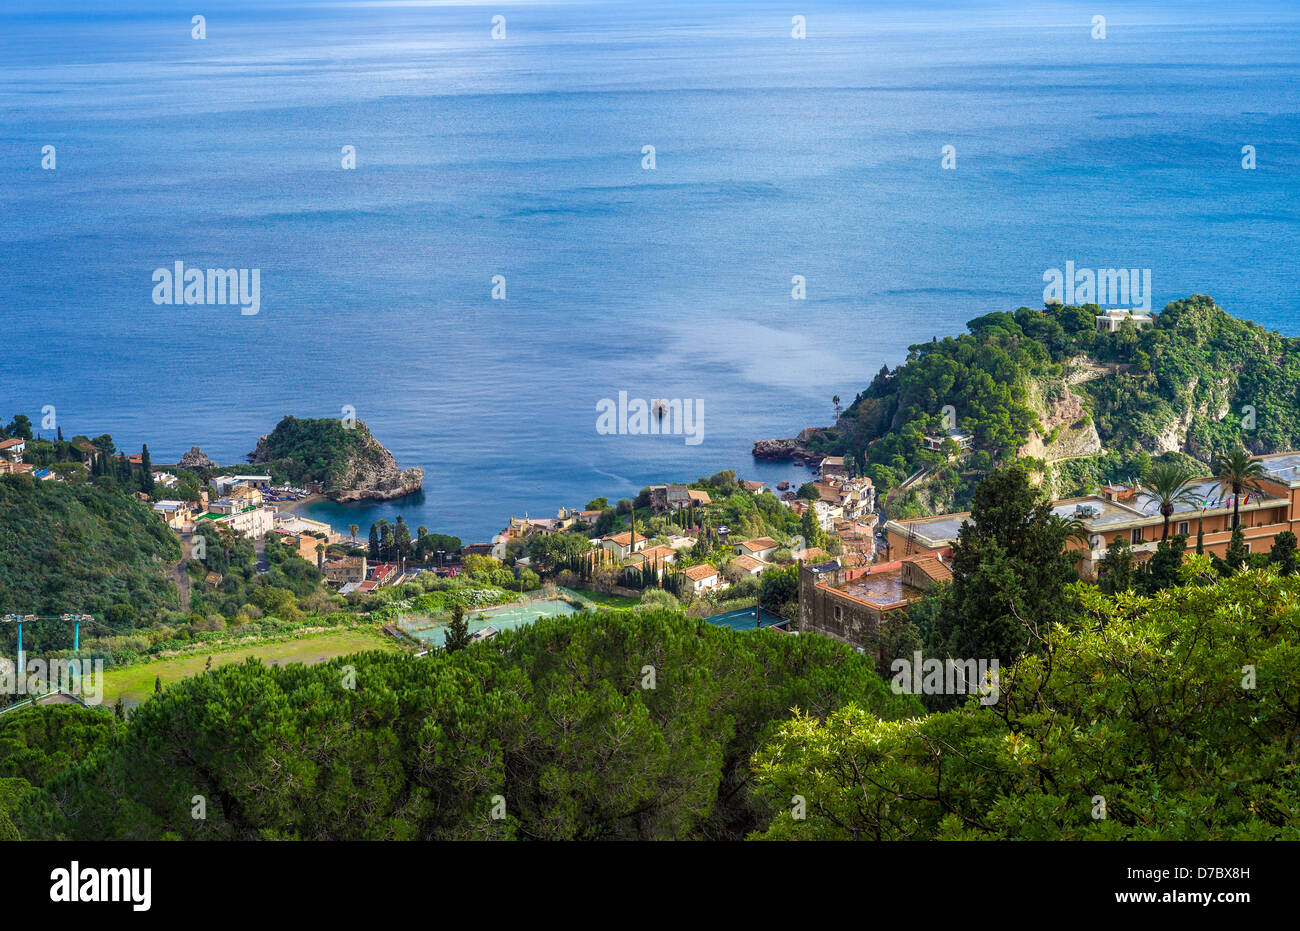 Europe Italy, Sicily, view of the sea and Isola Bella from Taormina - Stock Image